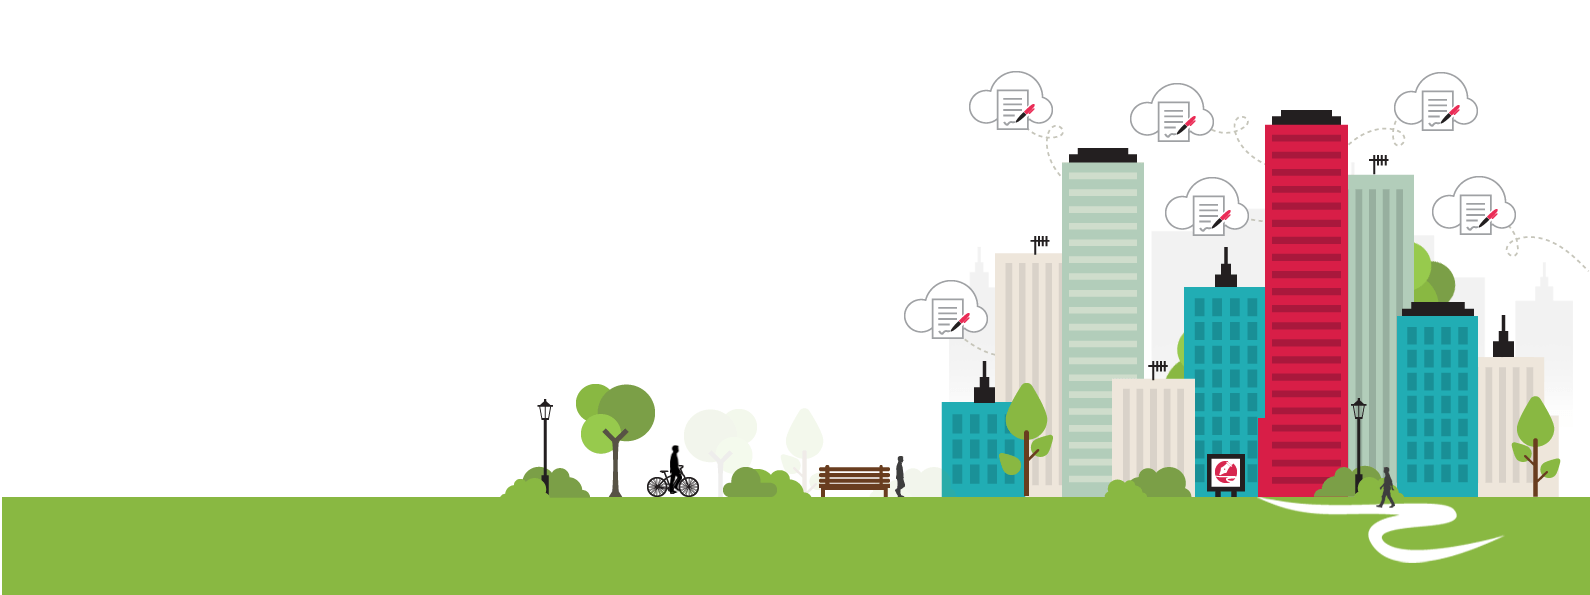 Image of drawn cityscape with legalesign logo, icon-style clouds and cyclist